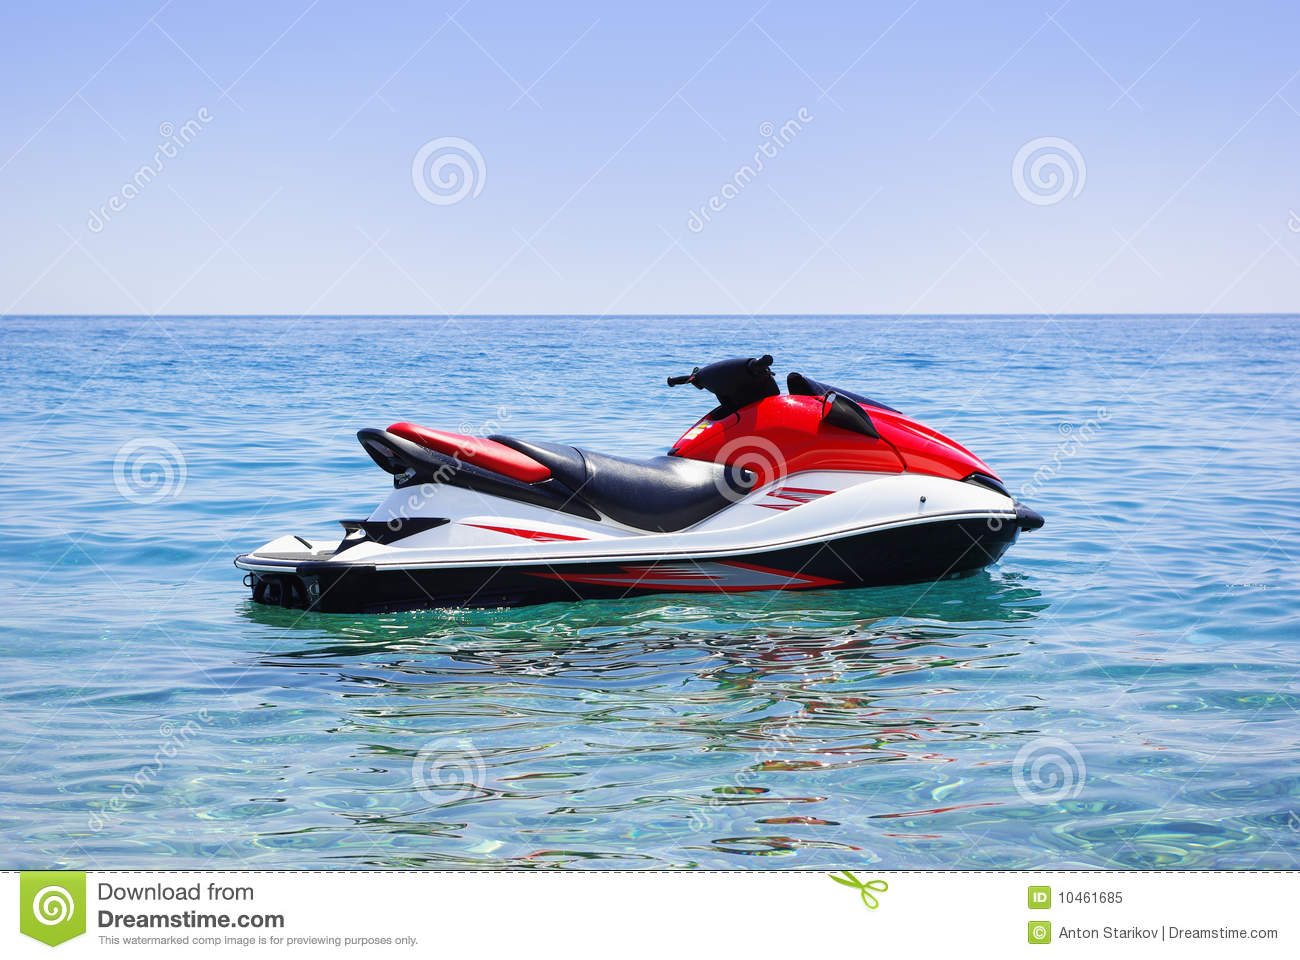 Gratis Jet Ski Jet Ski Royalty Free Stock Photo Image 10461685